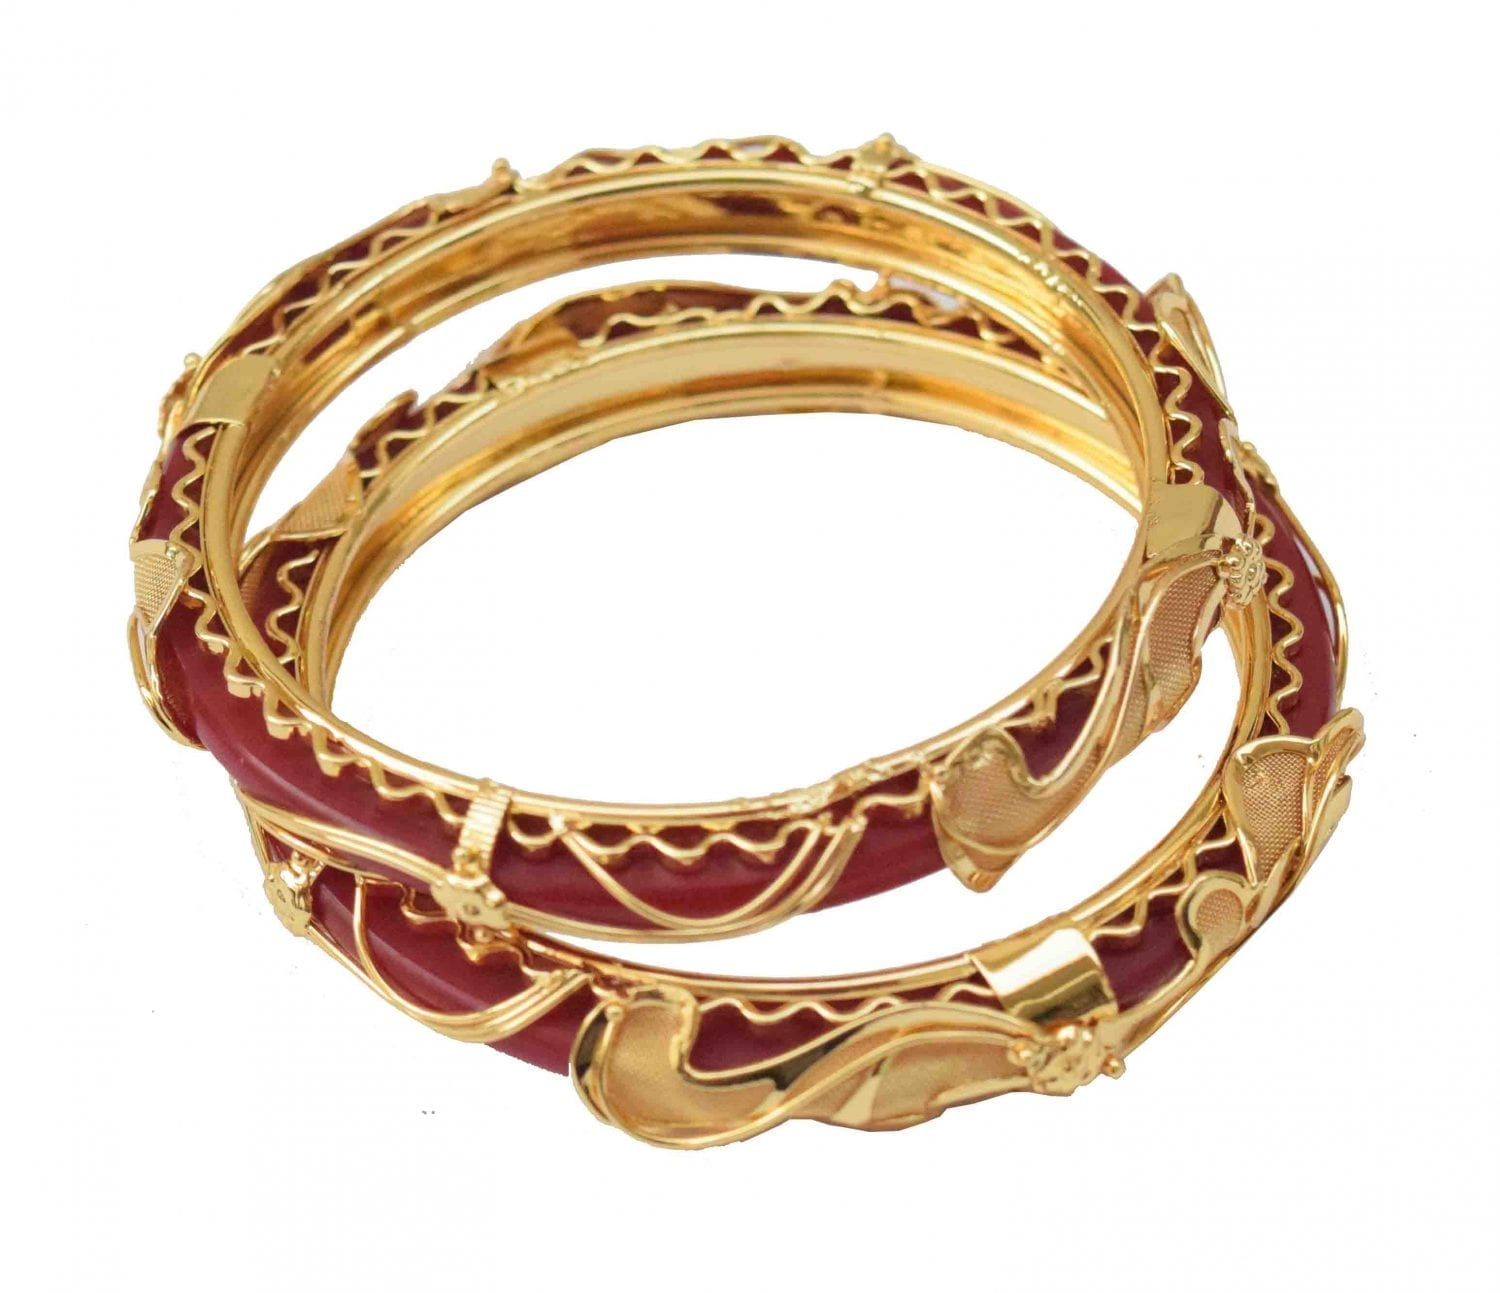 Red Golden designer kangan bangles set of 2 pieces BN161 1